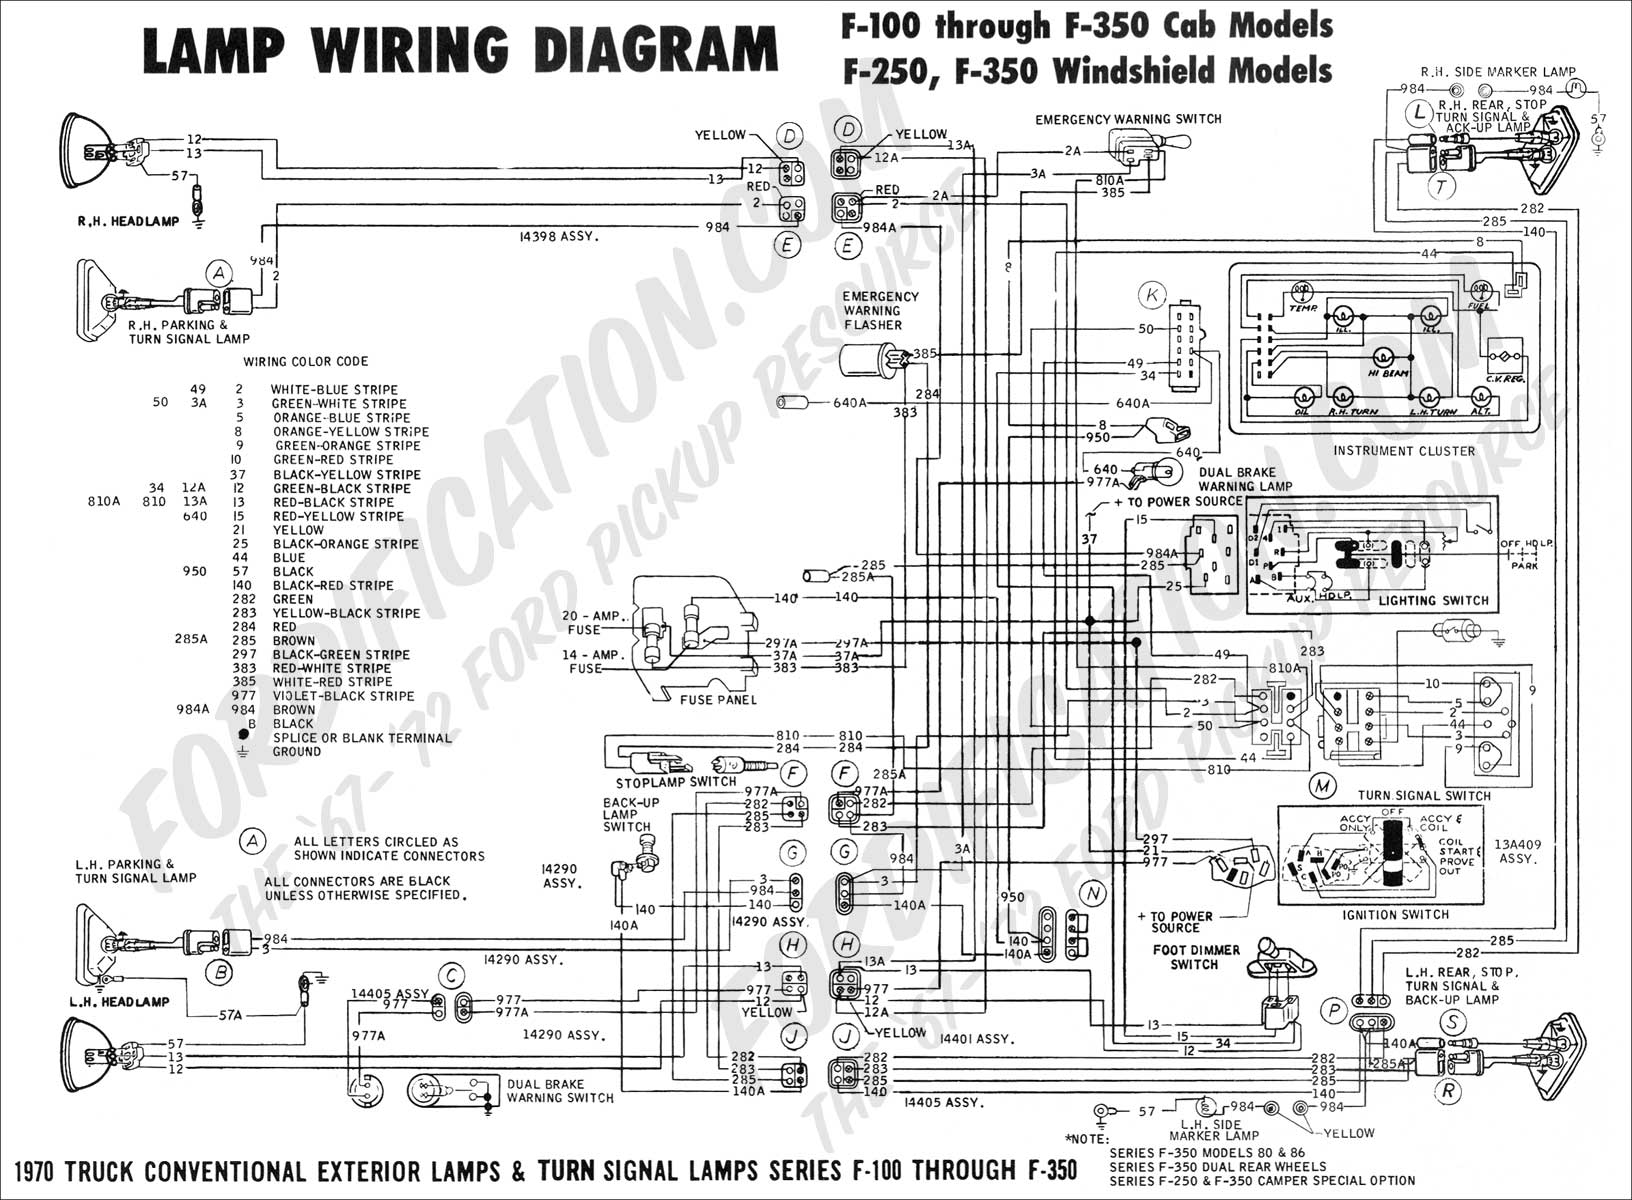 1999 ford f350 wiring diagram wiring diagram and schematic design fuse box diagram for 2004 f250 super duty on 1999 f350 ford f450 wiring diagram james gaffigan